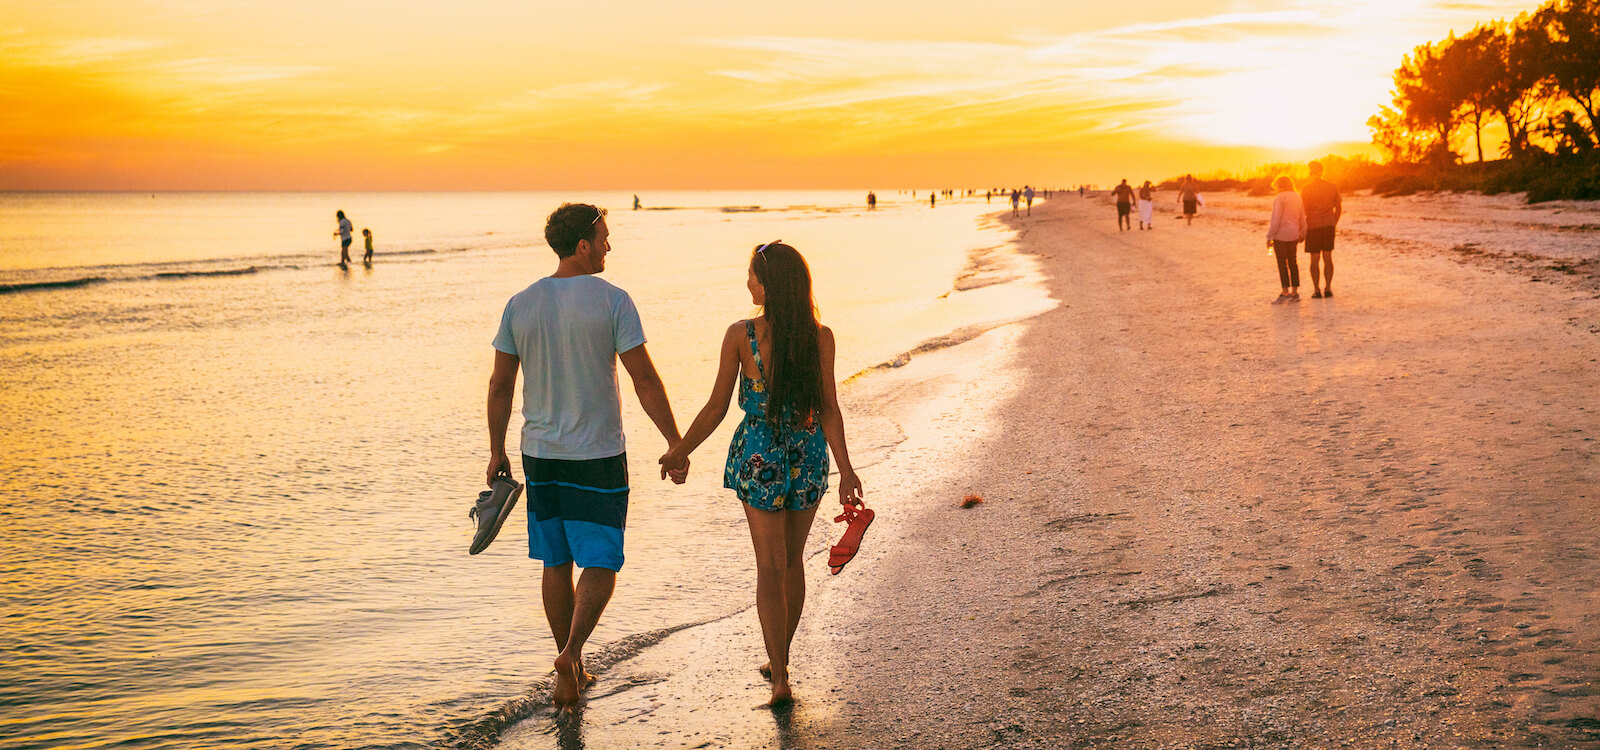 Sunset walk on the beach in Sarasota, Florida. Must Do Visitor Guides | MustDo.com